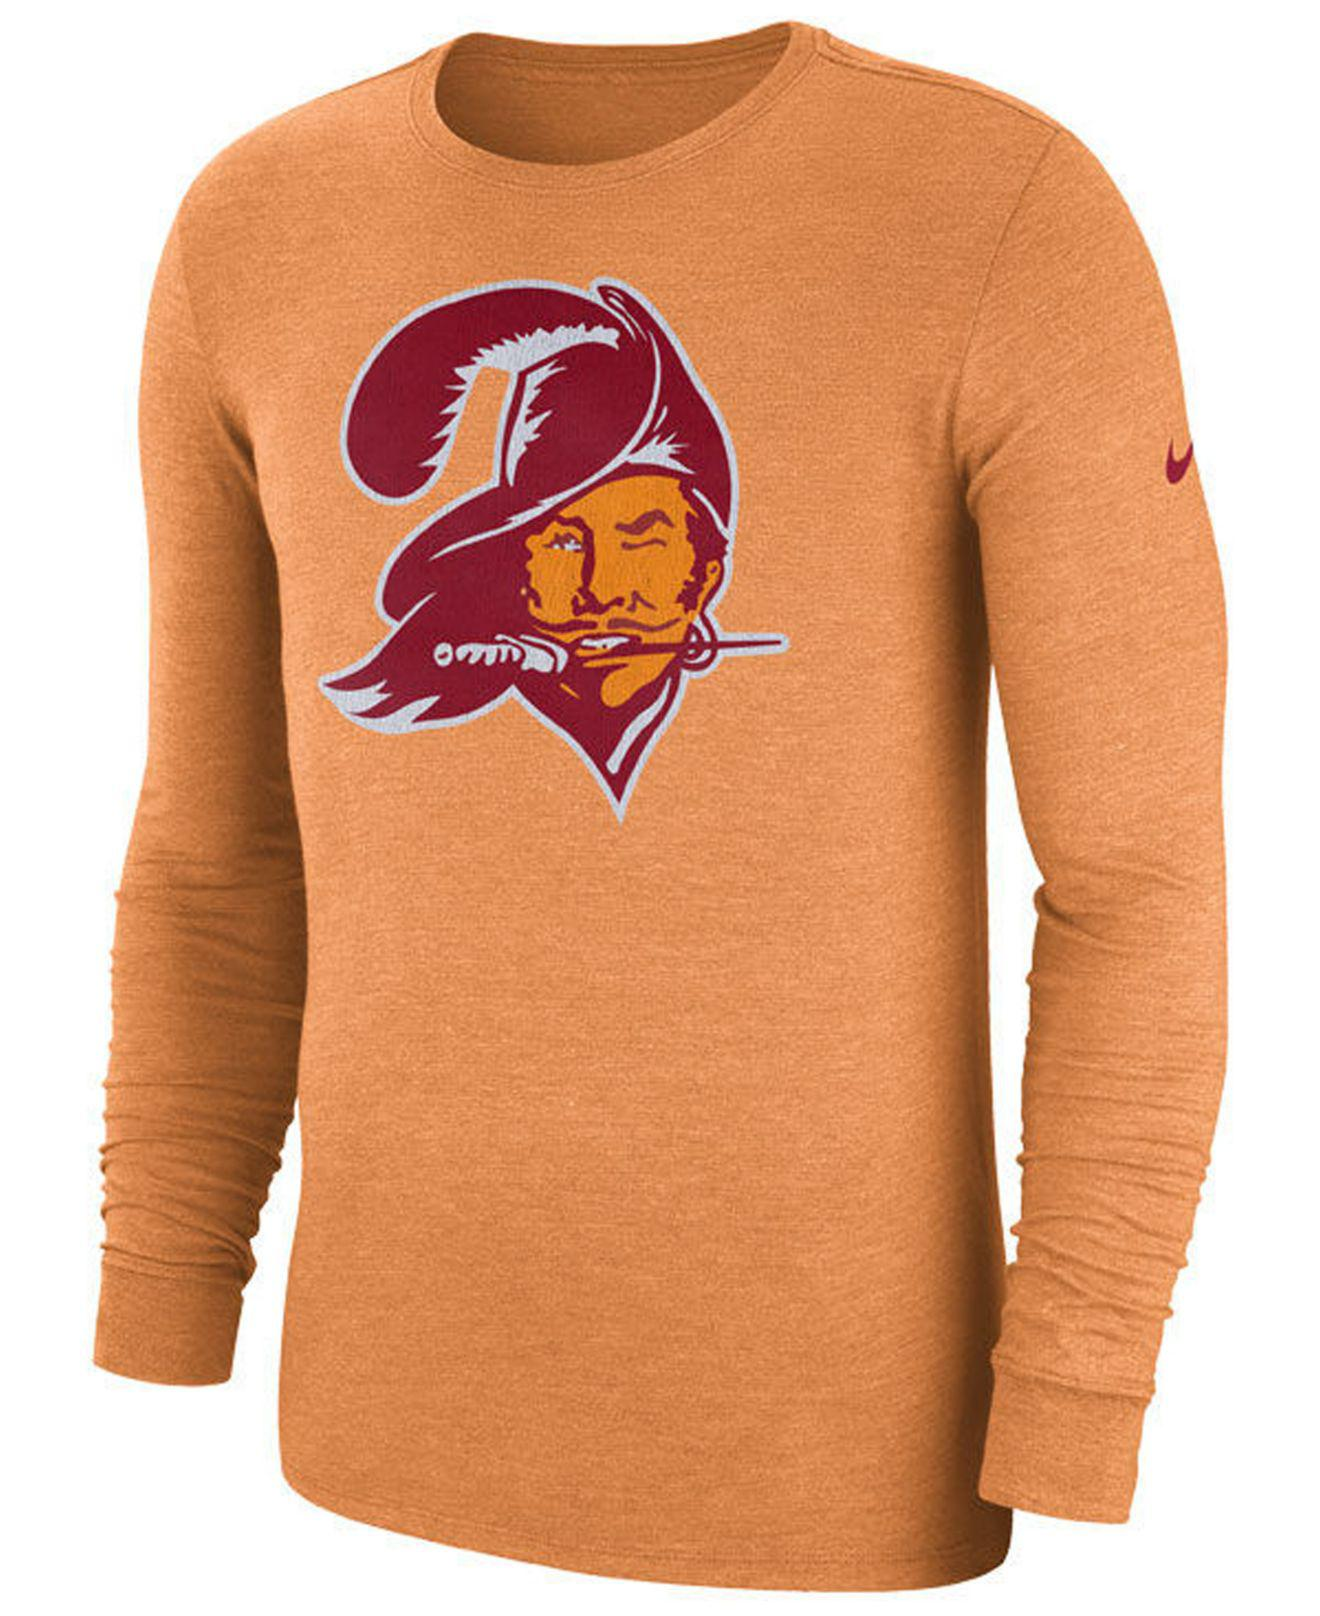 Lyst - Nike (nfl Buccaneers) Men s Tri-blend Long Sleeve T-shirt in ... a158f301a